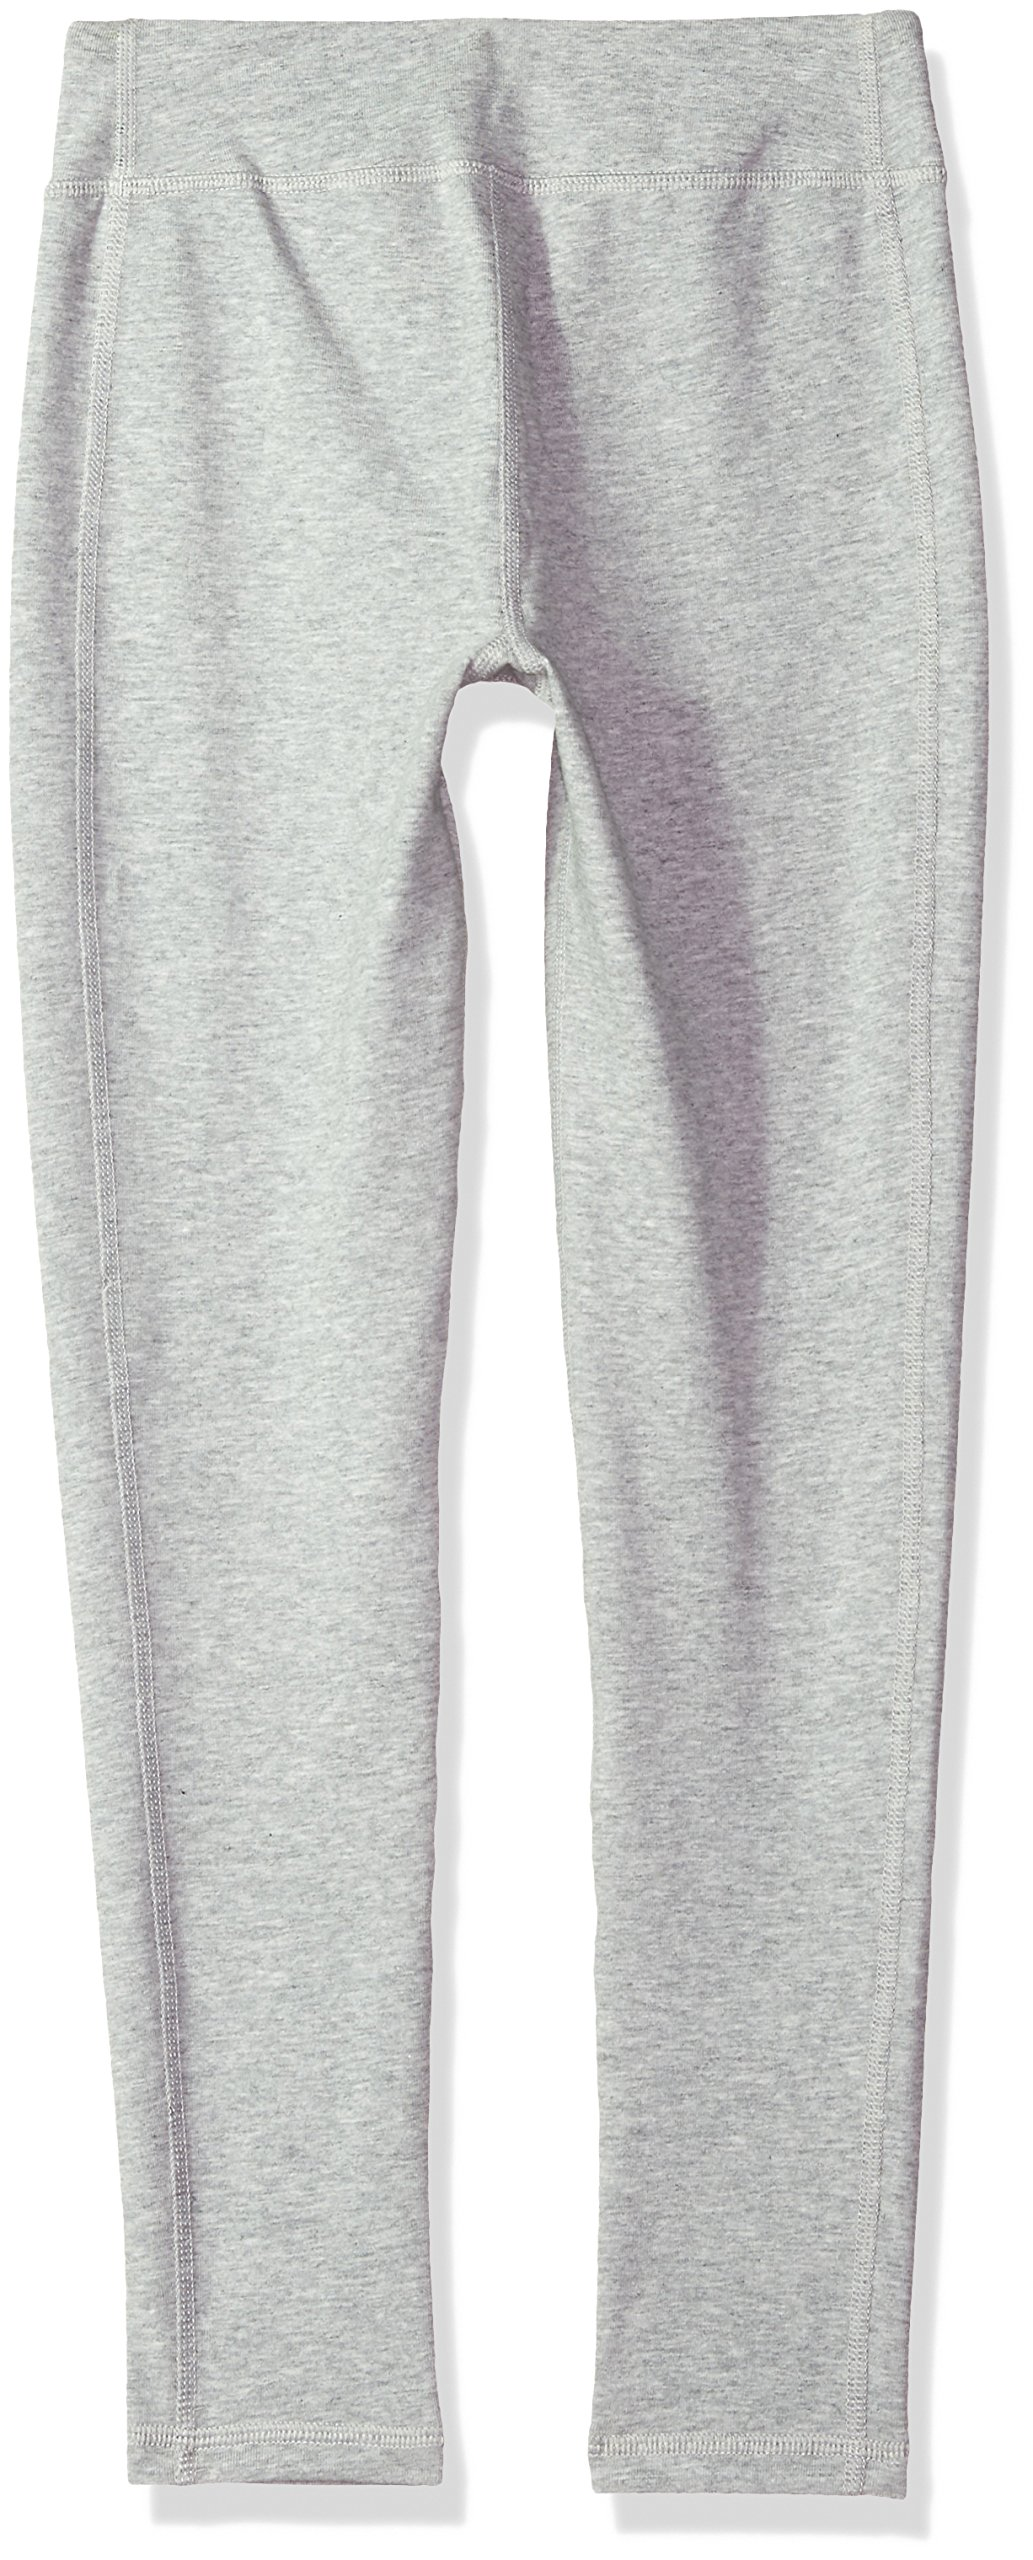 Under Armour Girls' Favorite Knit Leggings, True Gray Heather (025)/Penta Pink, Youth Large by Under Armour (Image #2)